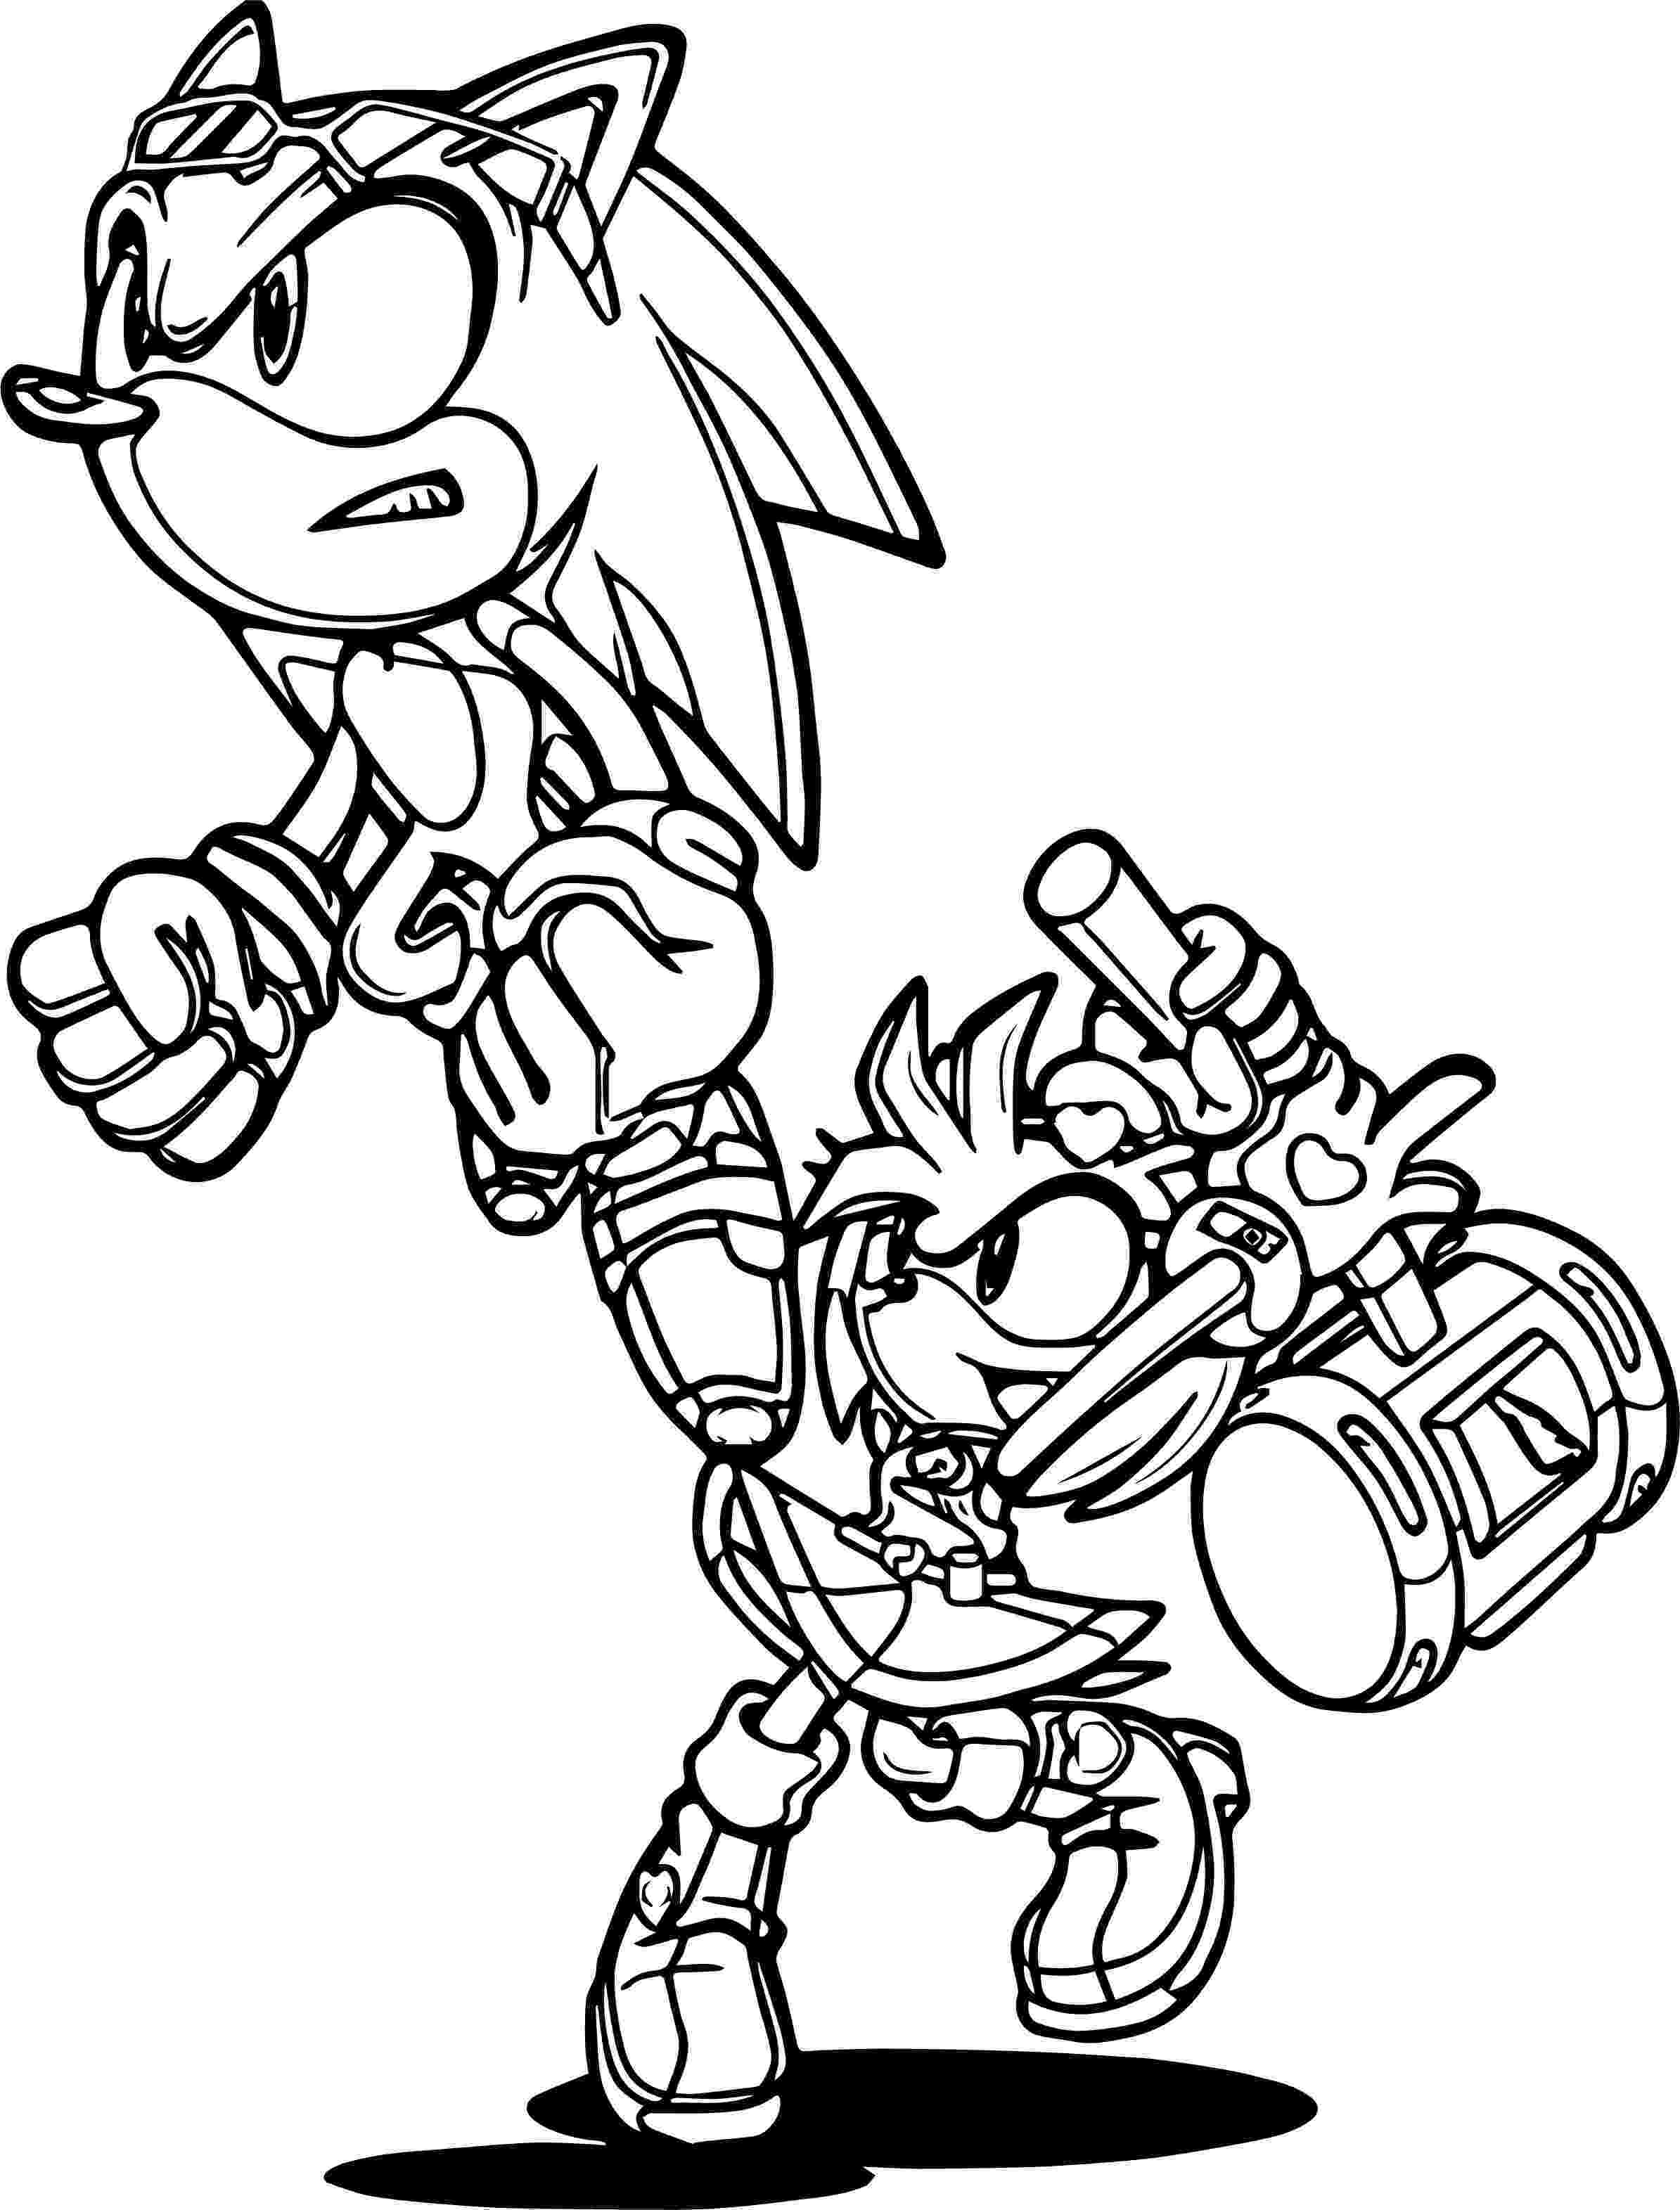 sonic amy coloring pages color me kiss by sonicschilidog on deviantart amy coloring sonic pages